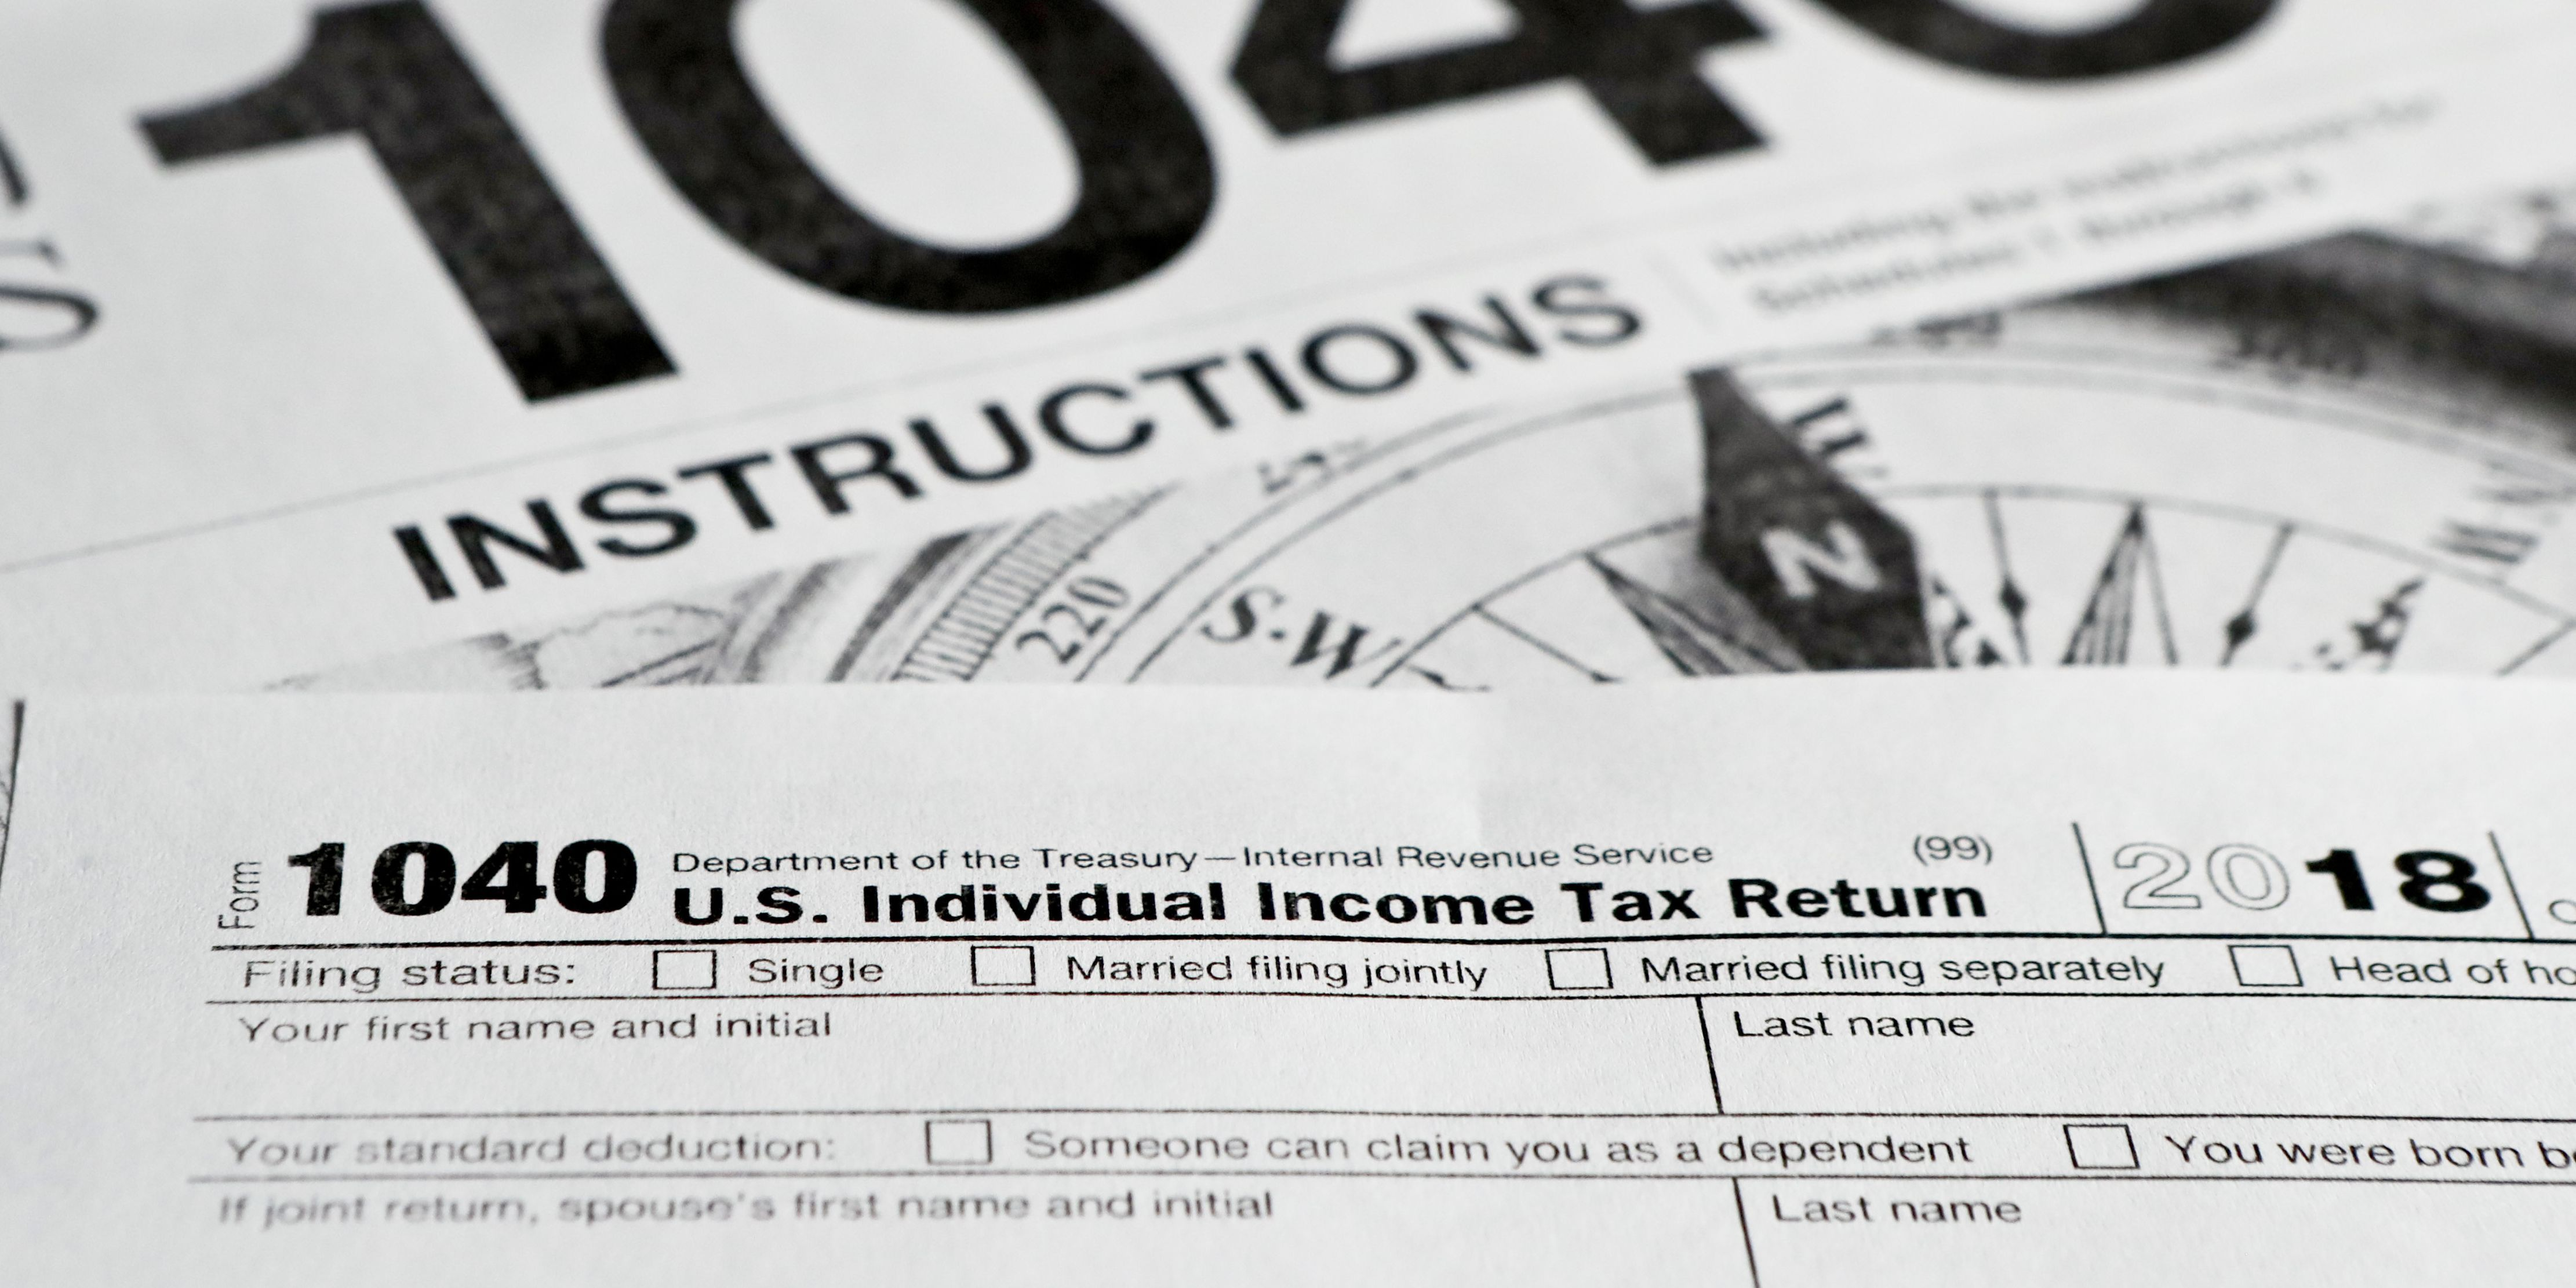 Virginia taxpayers will get money back from the state in October